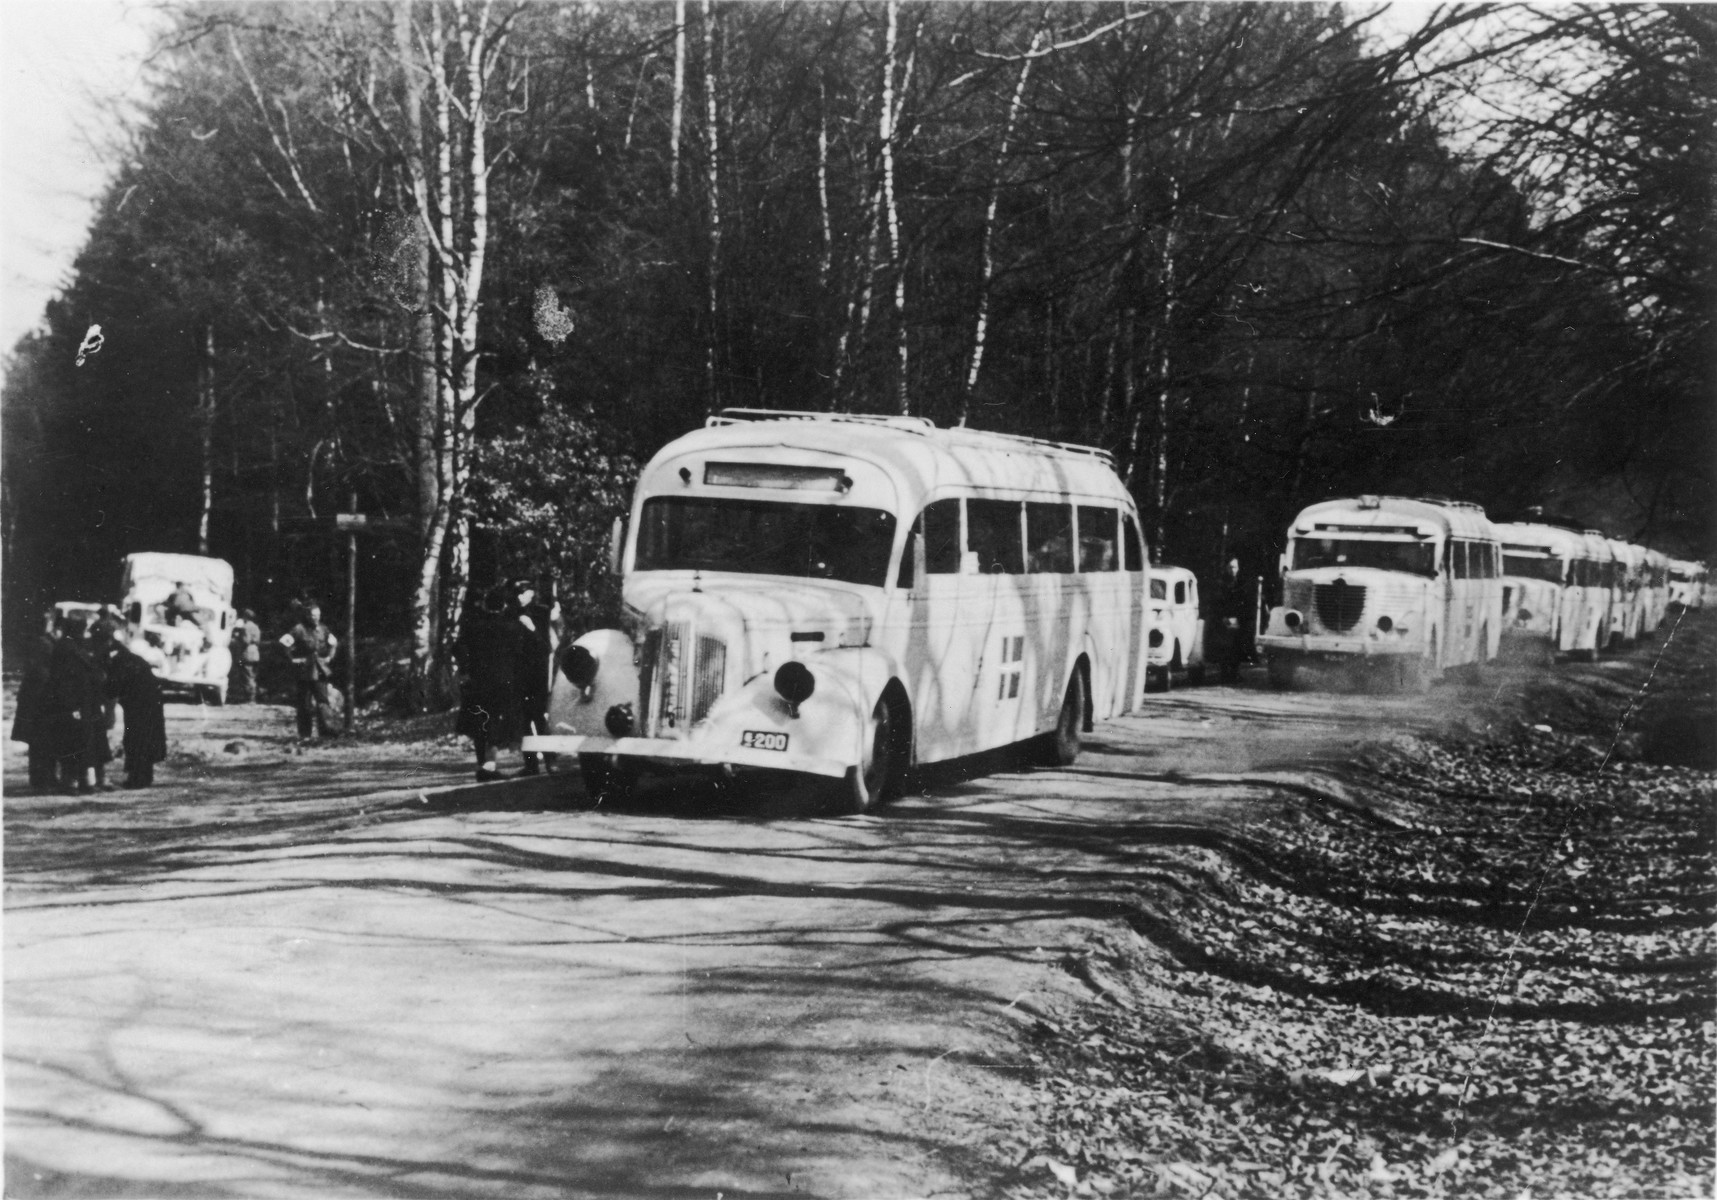 A convoy of Swedish Red Cross white buses, which are being used to evacuate concentration camp prisoners and transport them to Sweden, are lined up on a road.